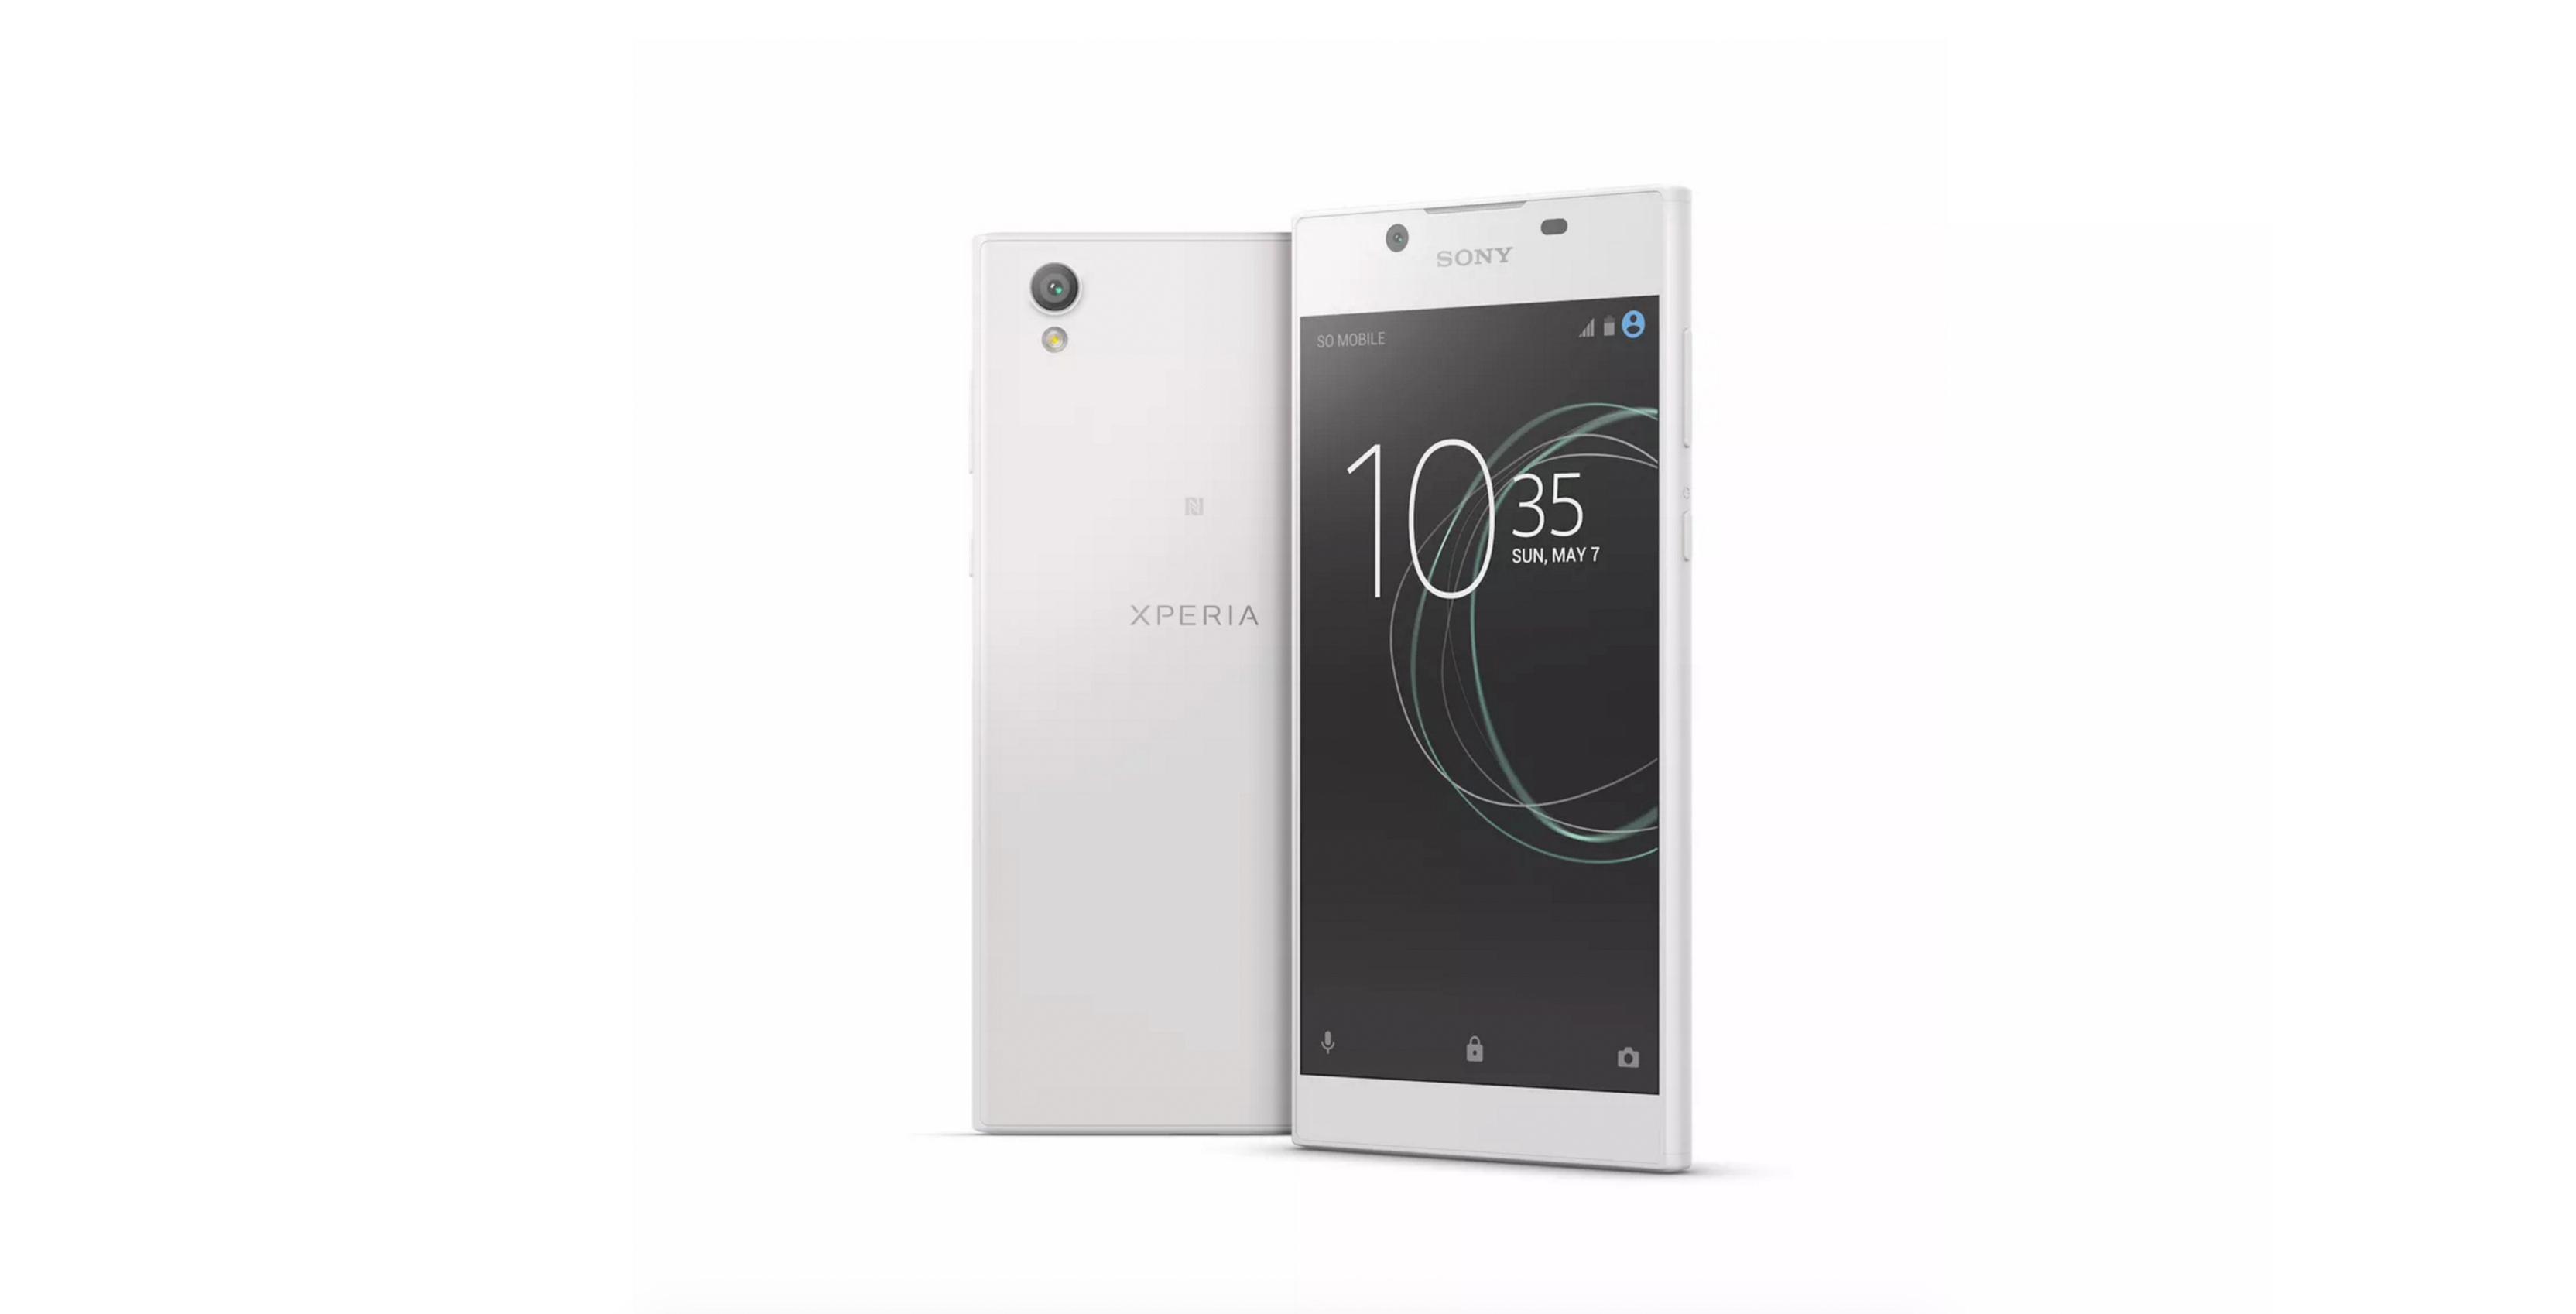 Render of Sony Xperia L1